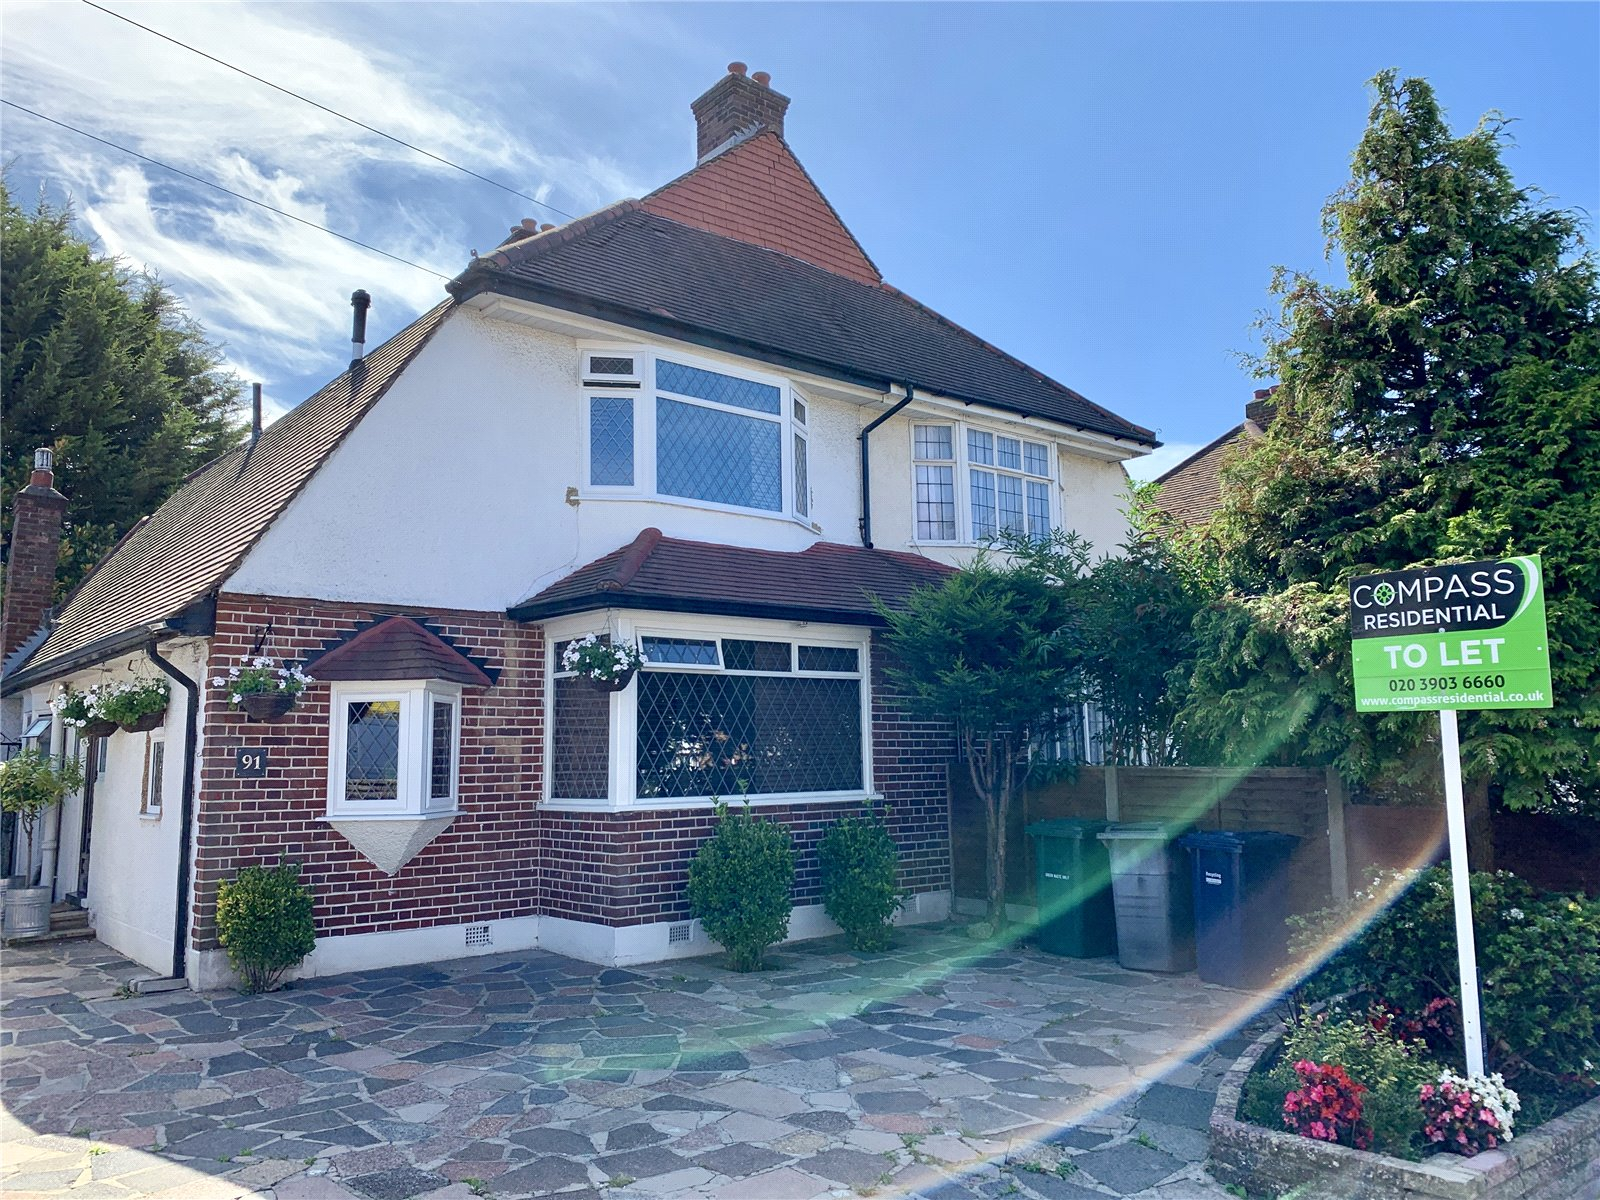 3 bed  to rent in Chase Way, Southgate, N14